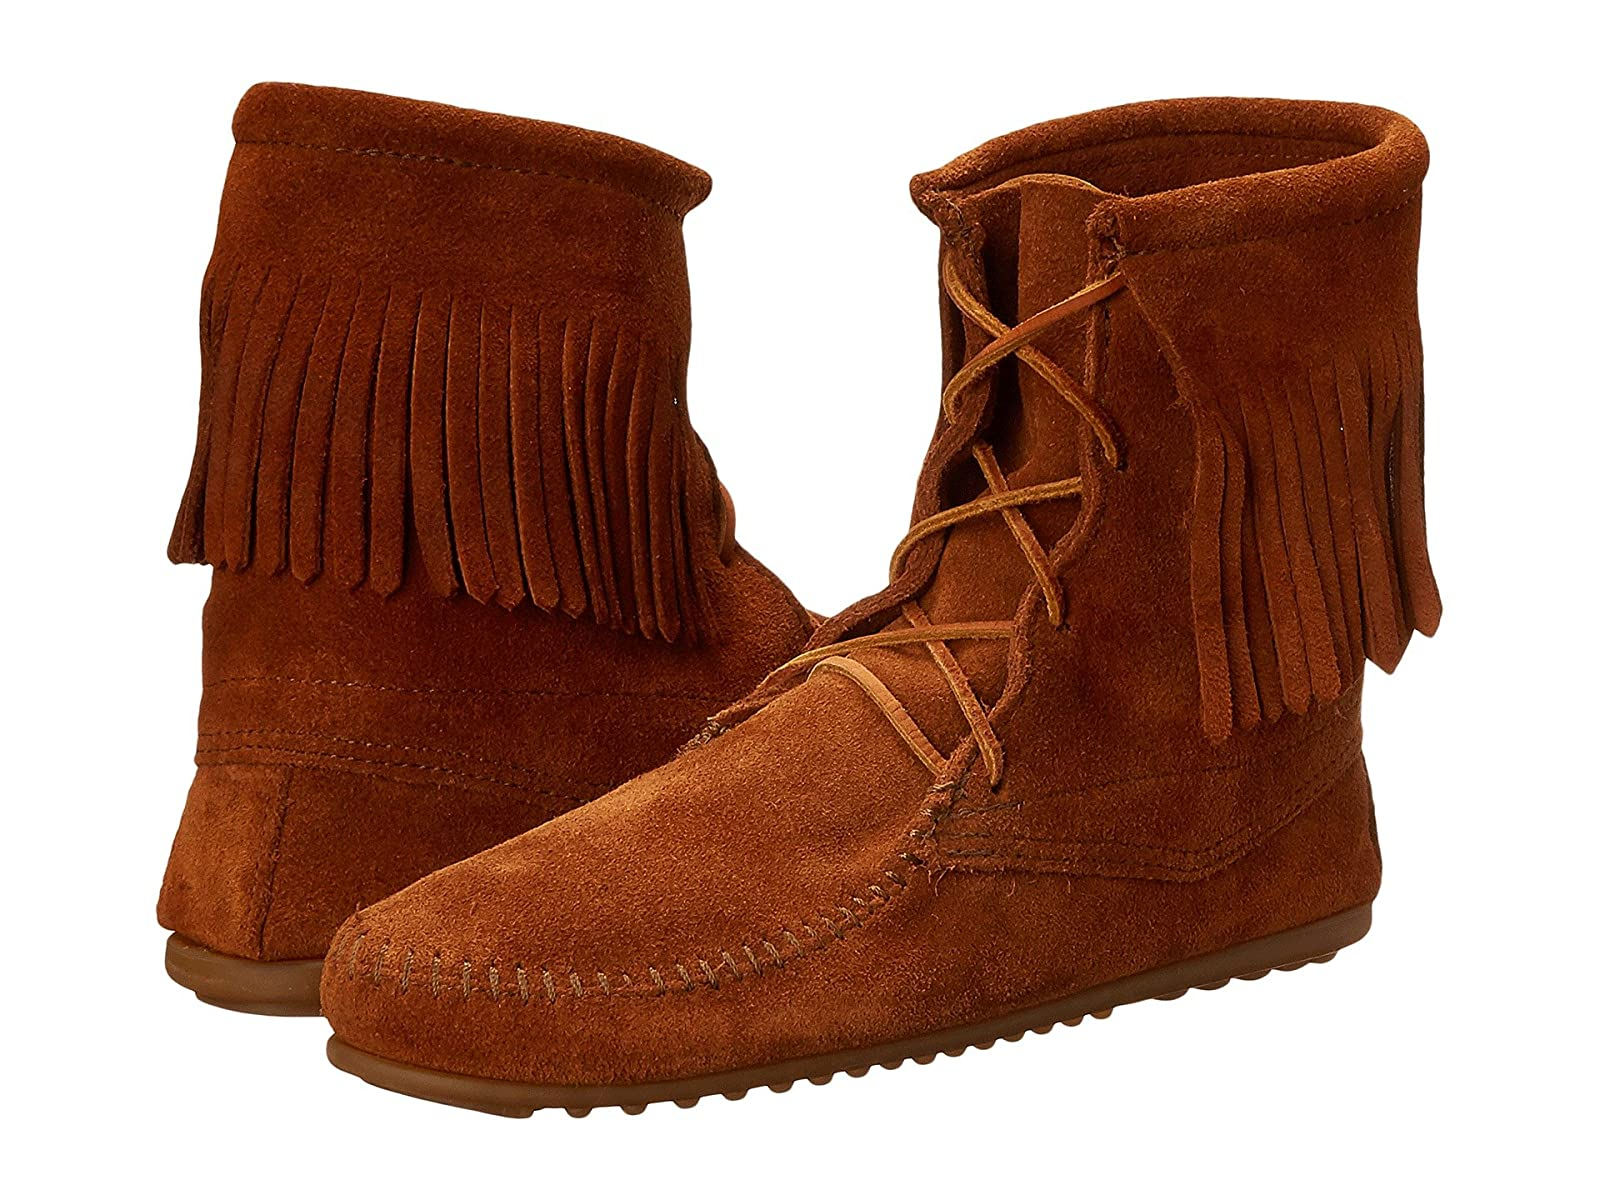 Minnetonka Tramper Ankle Hi BootEconomical and quality shoes